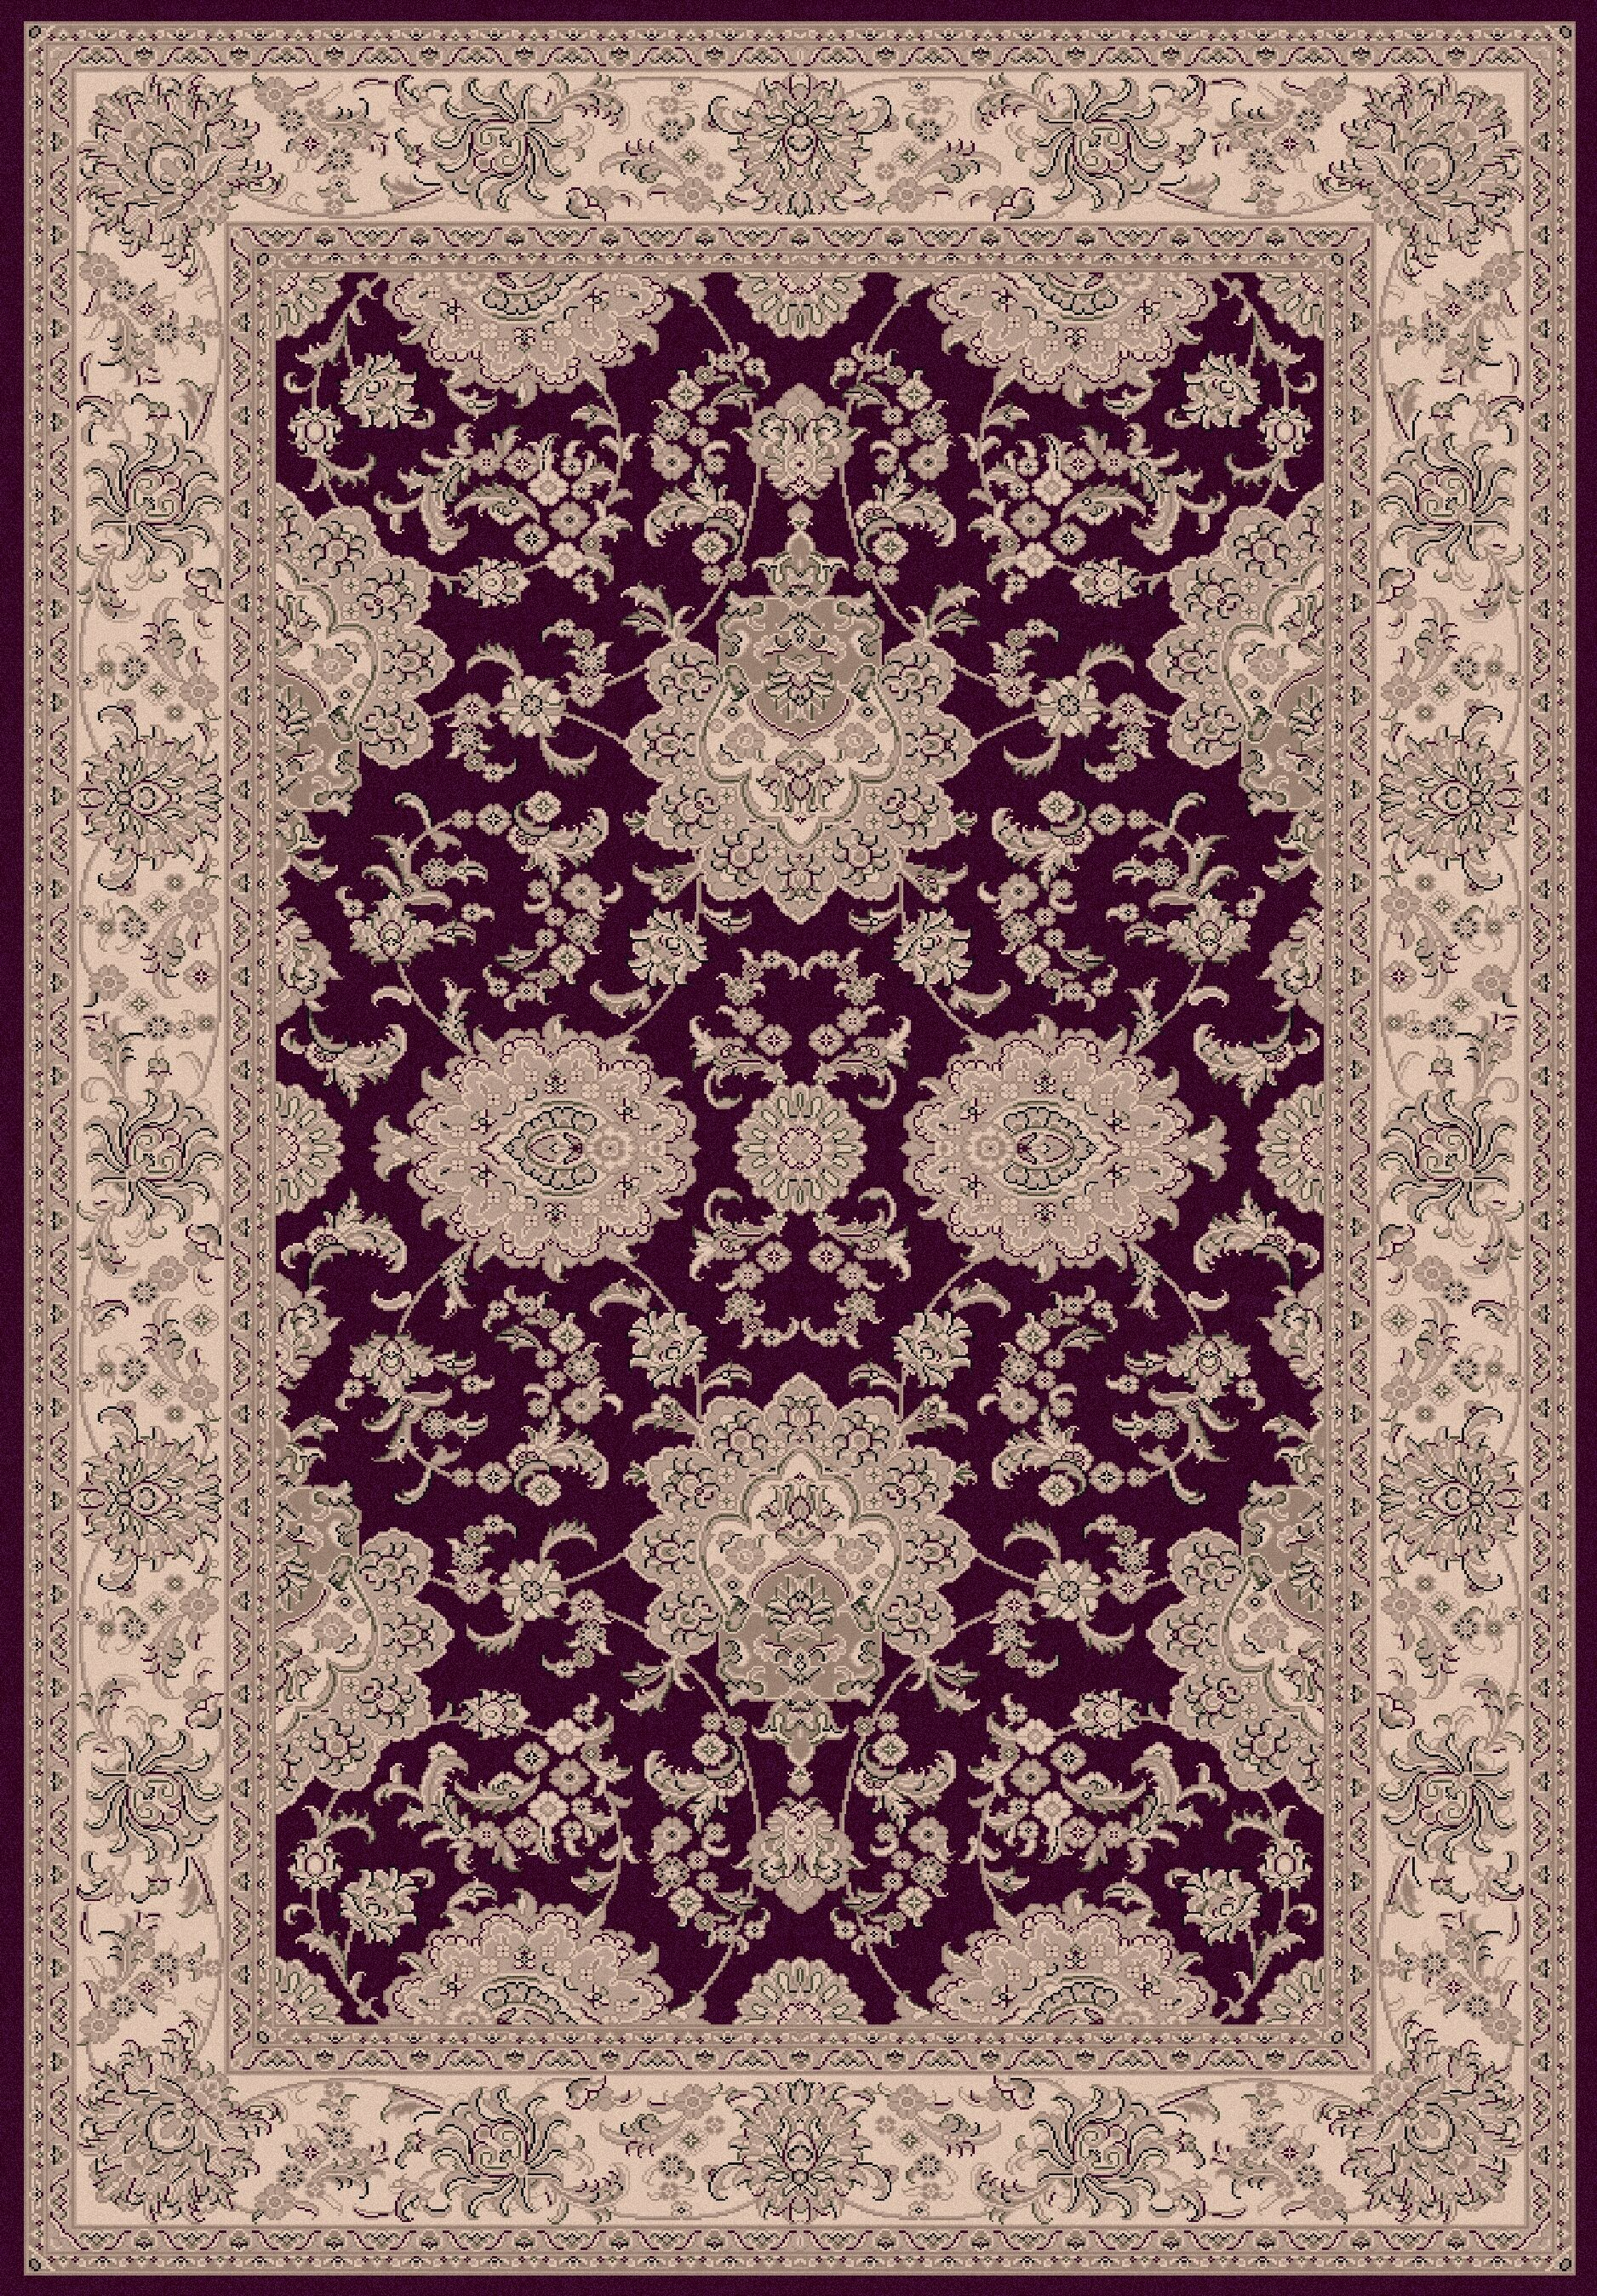 Atterbury Agra Red Rug Rug Size: Rectangle 9'2